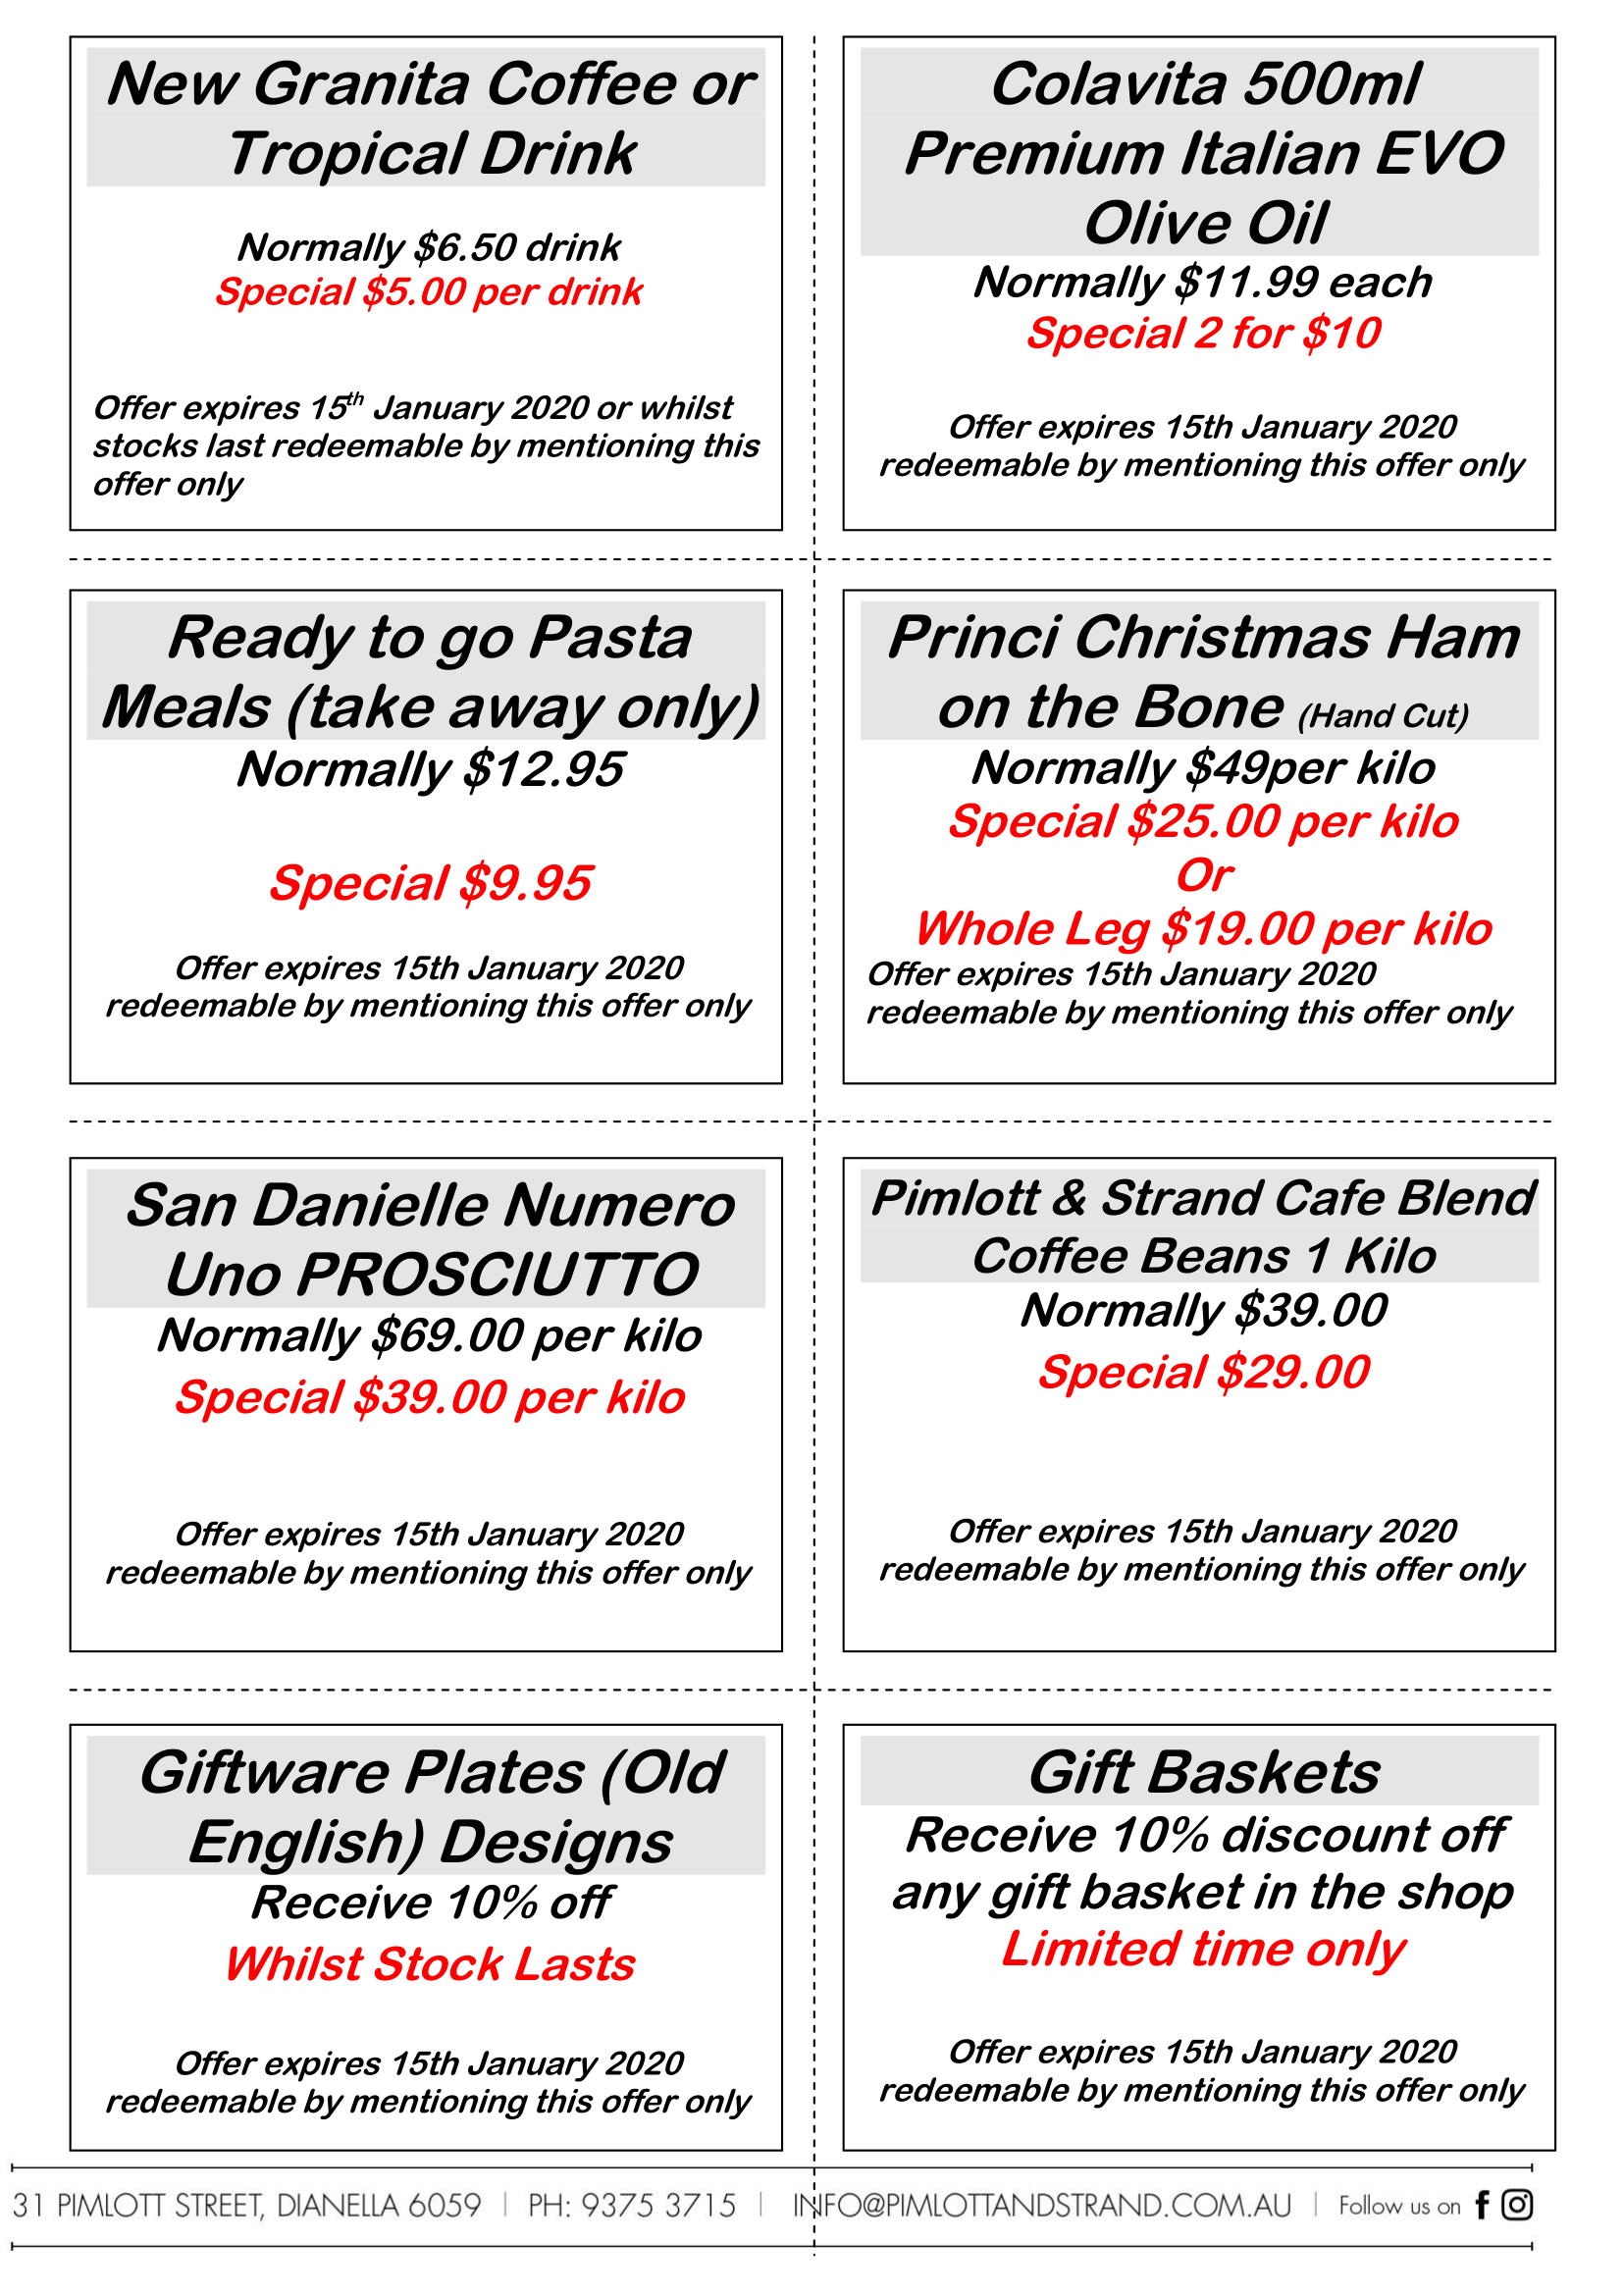 Pimlott & Strand Restaurant in Dianella Christmas Specials